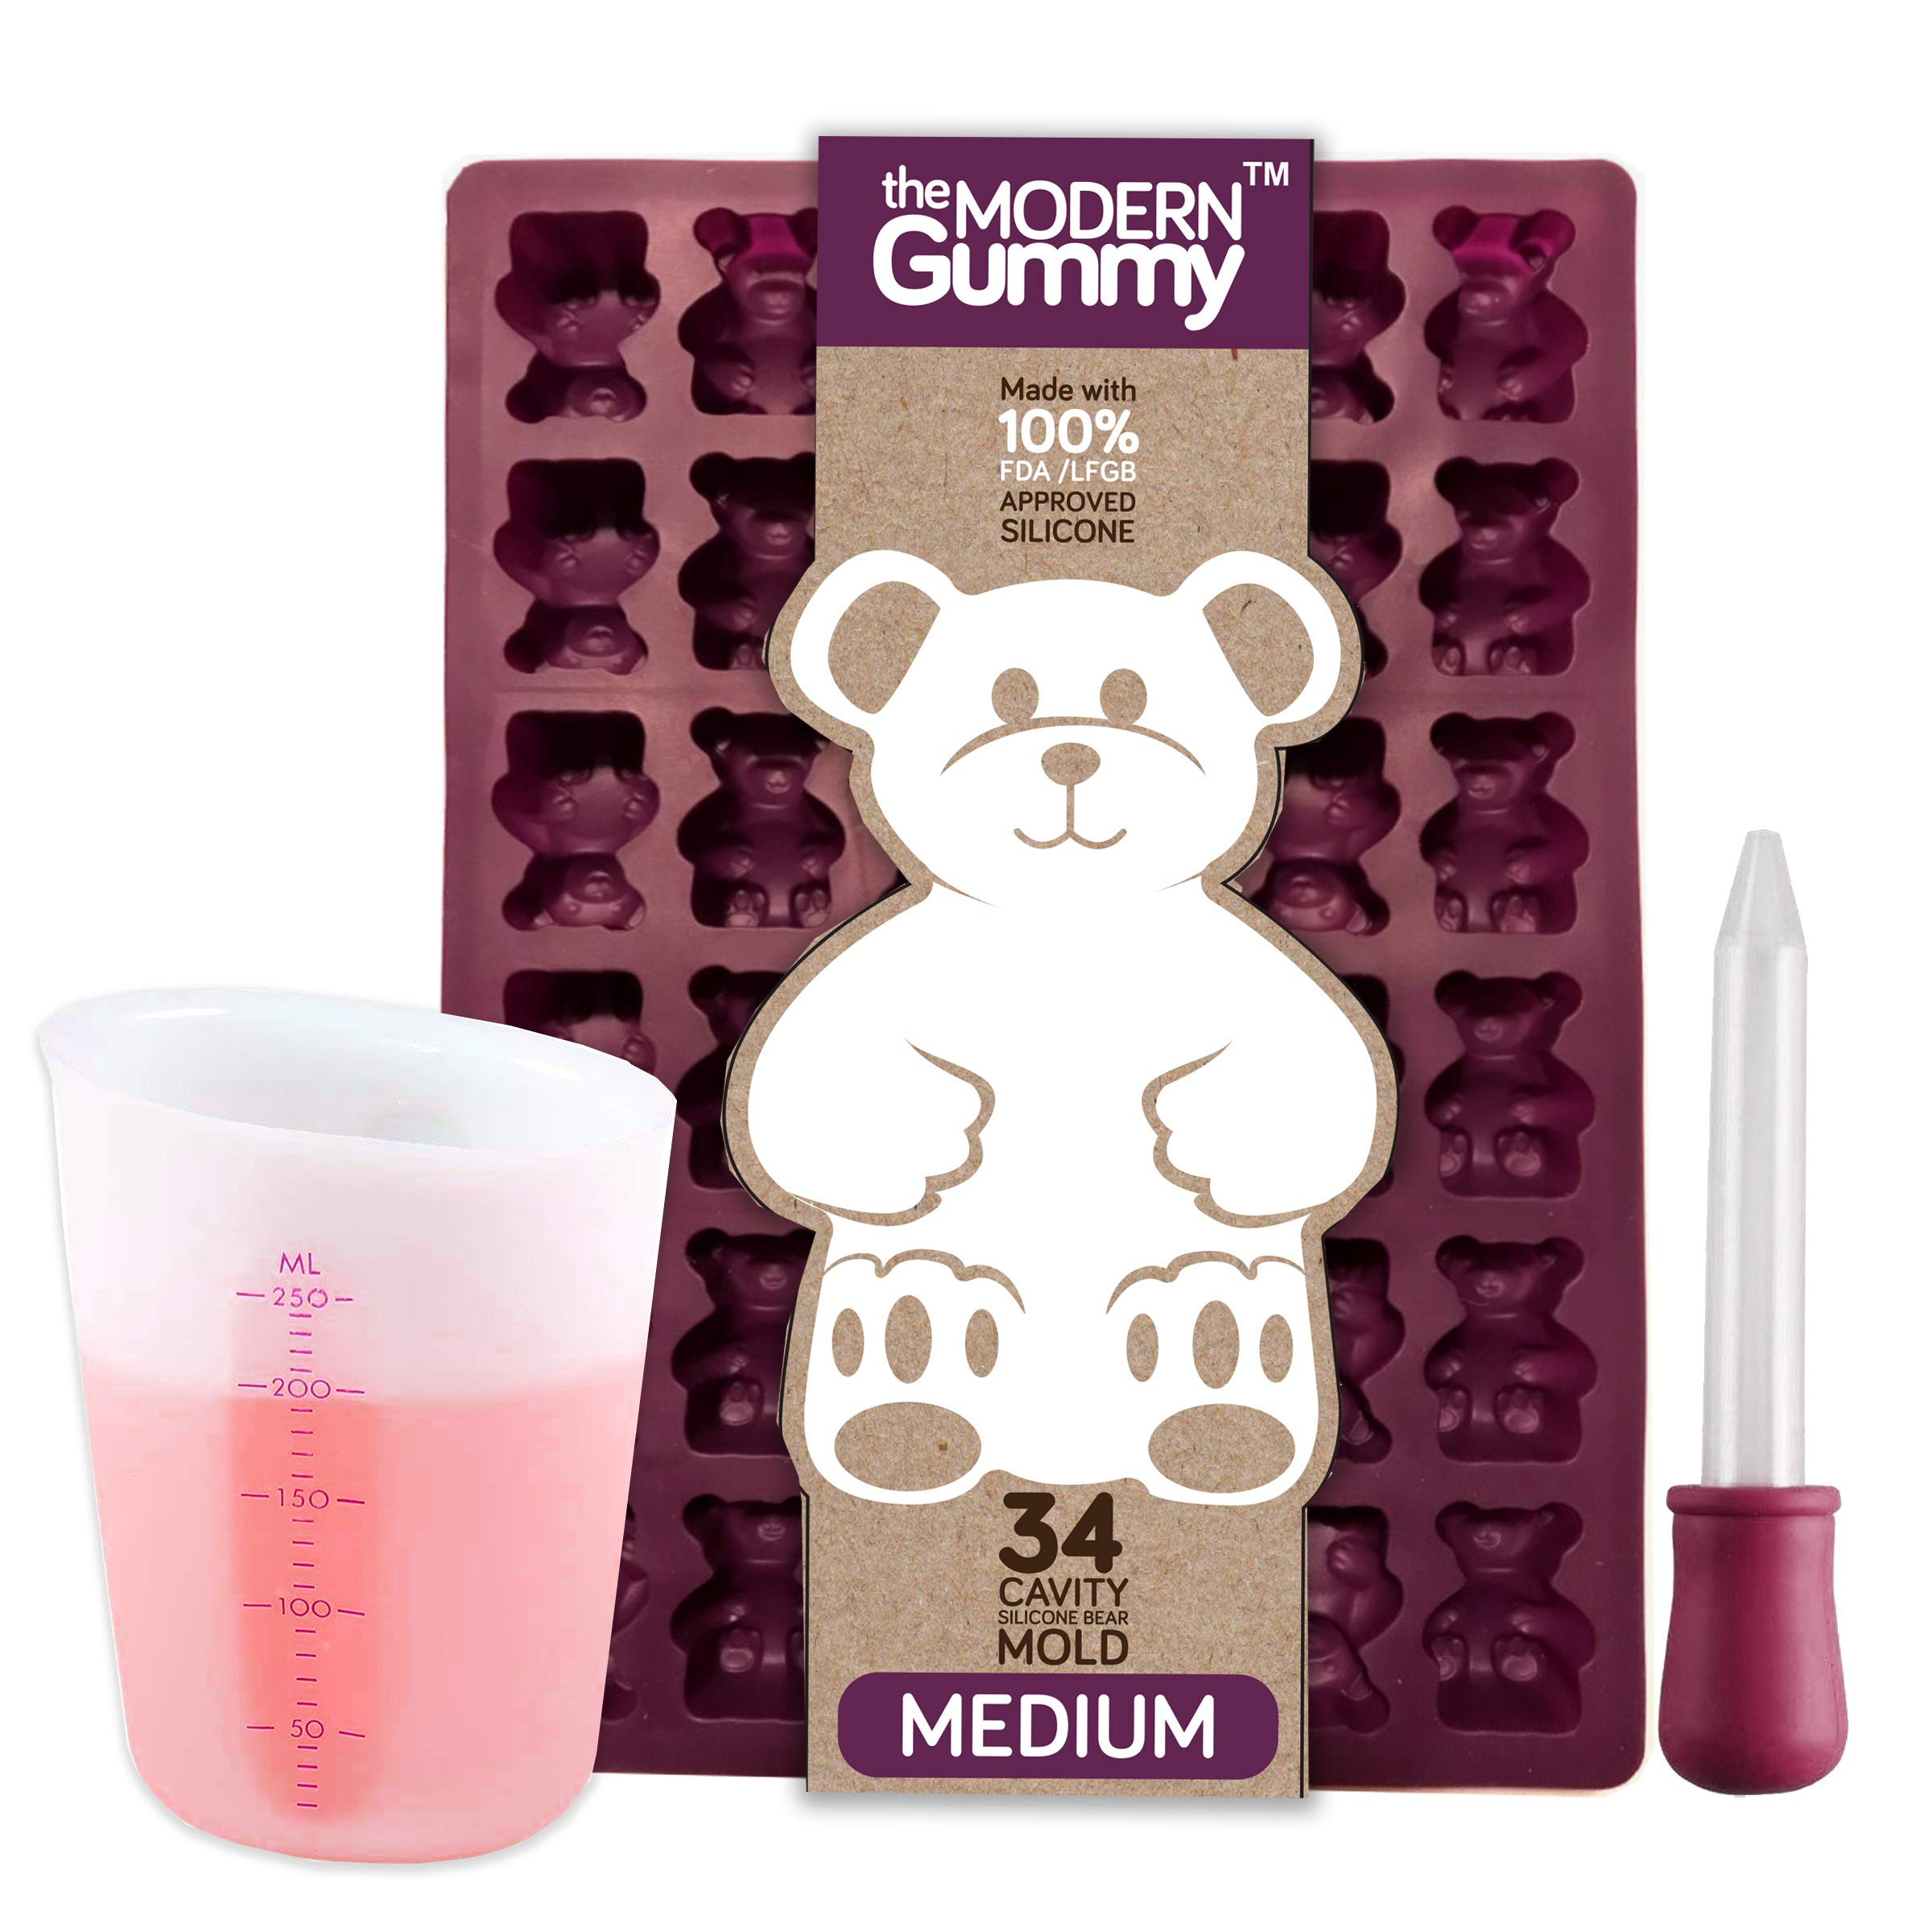 MEDIUM size GUMMY BEAR Mold with BONUS Pinch & Pour Cup + Dropper - by the Modern Gummy; Gelatin GUMMY Recipe on Package & FULL RECIPE PDF via EMAIL, PROFESSIONAL GRADE PURE LFGB SILICONE by The Modern Gummy (Image #7)